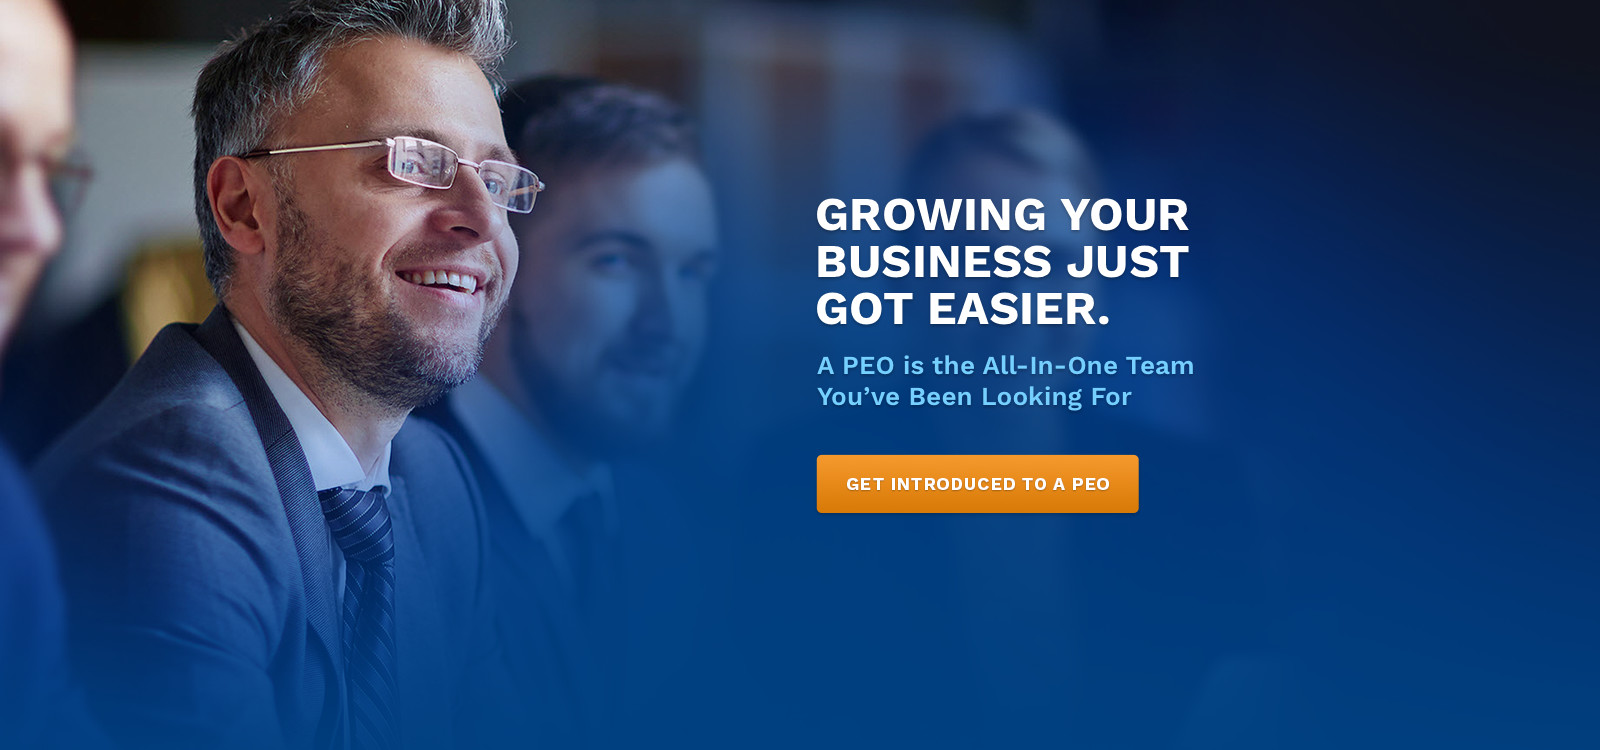 Growing Your Business Just Got Easier - Click to Find a PEO